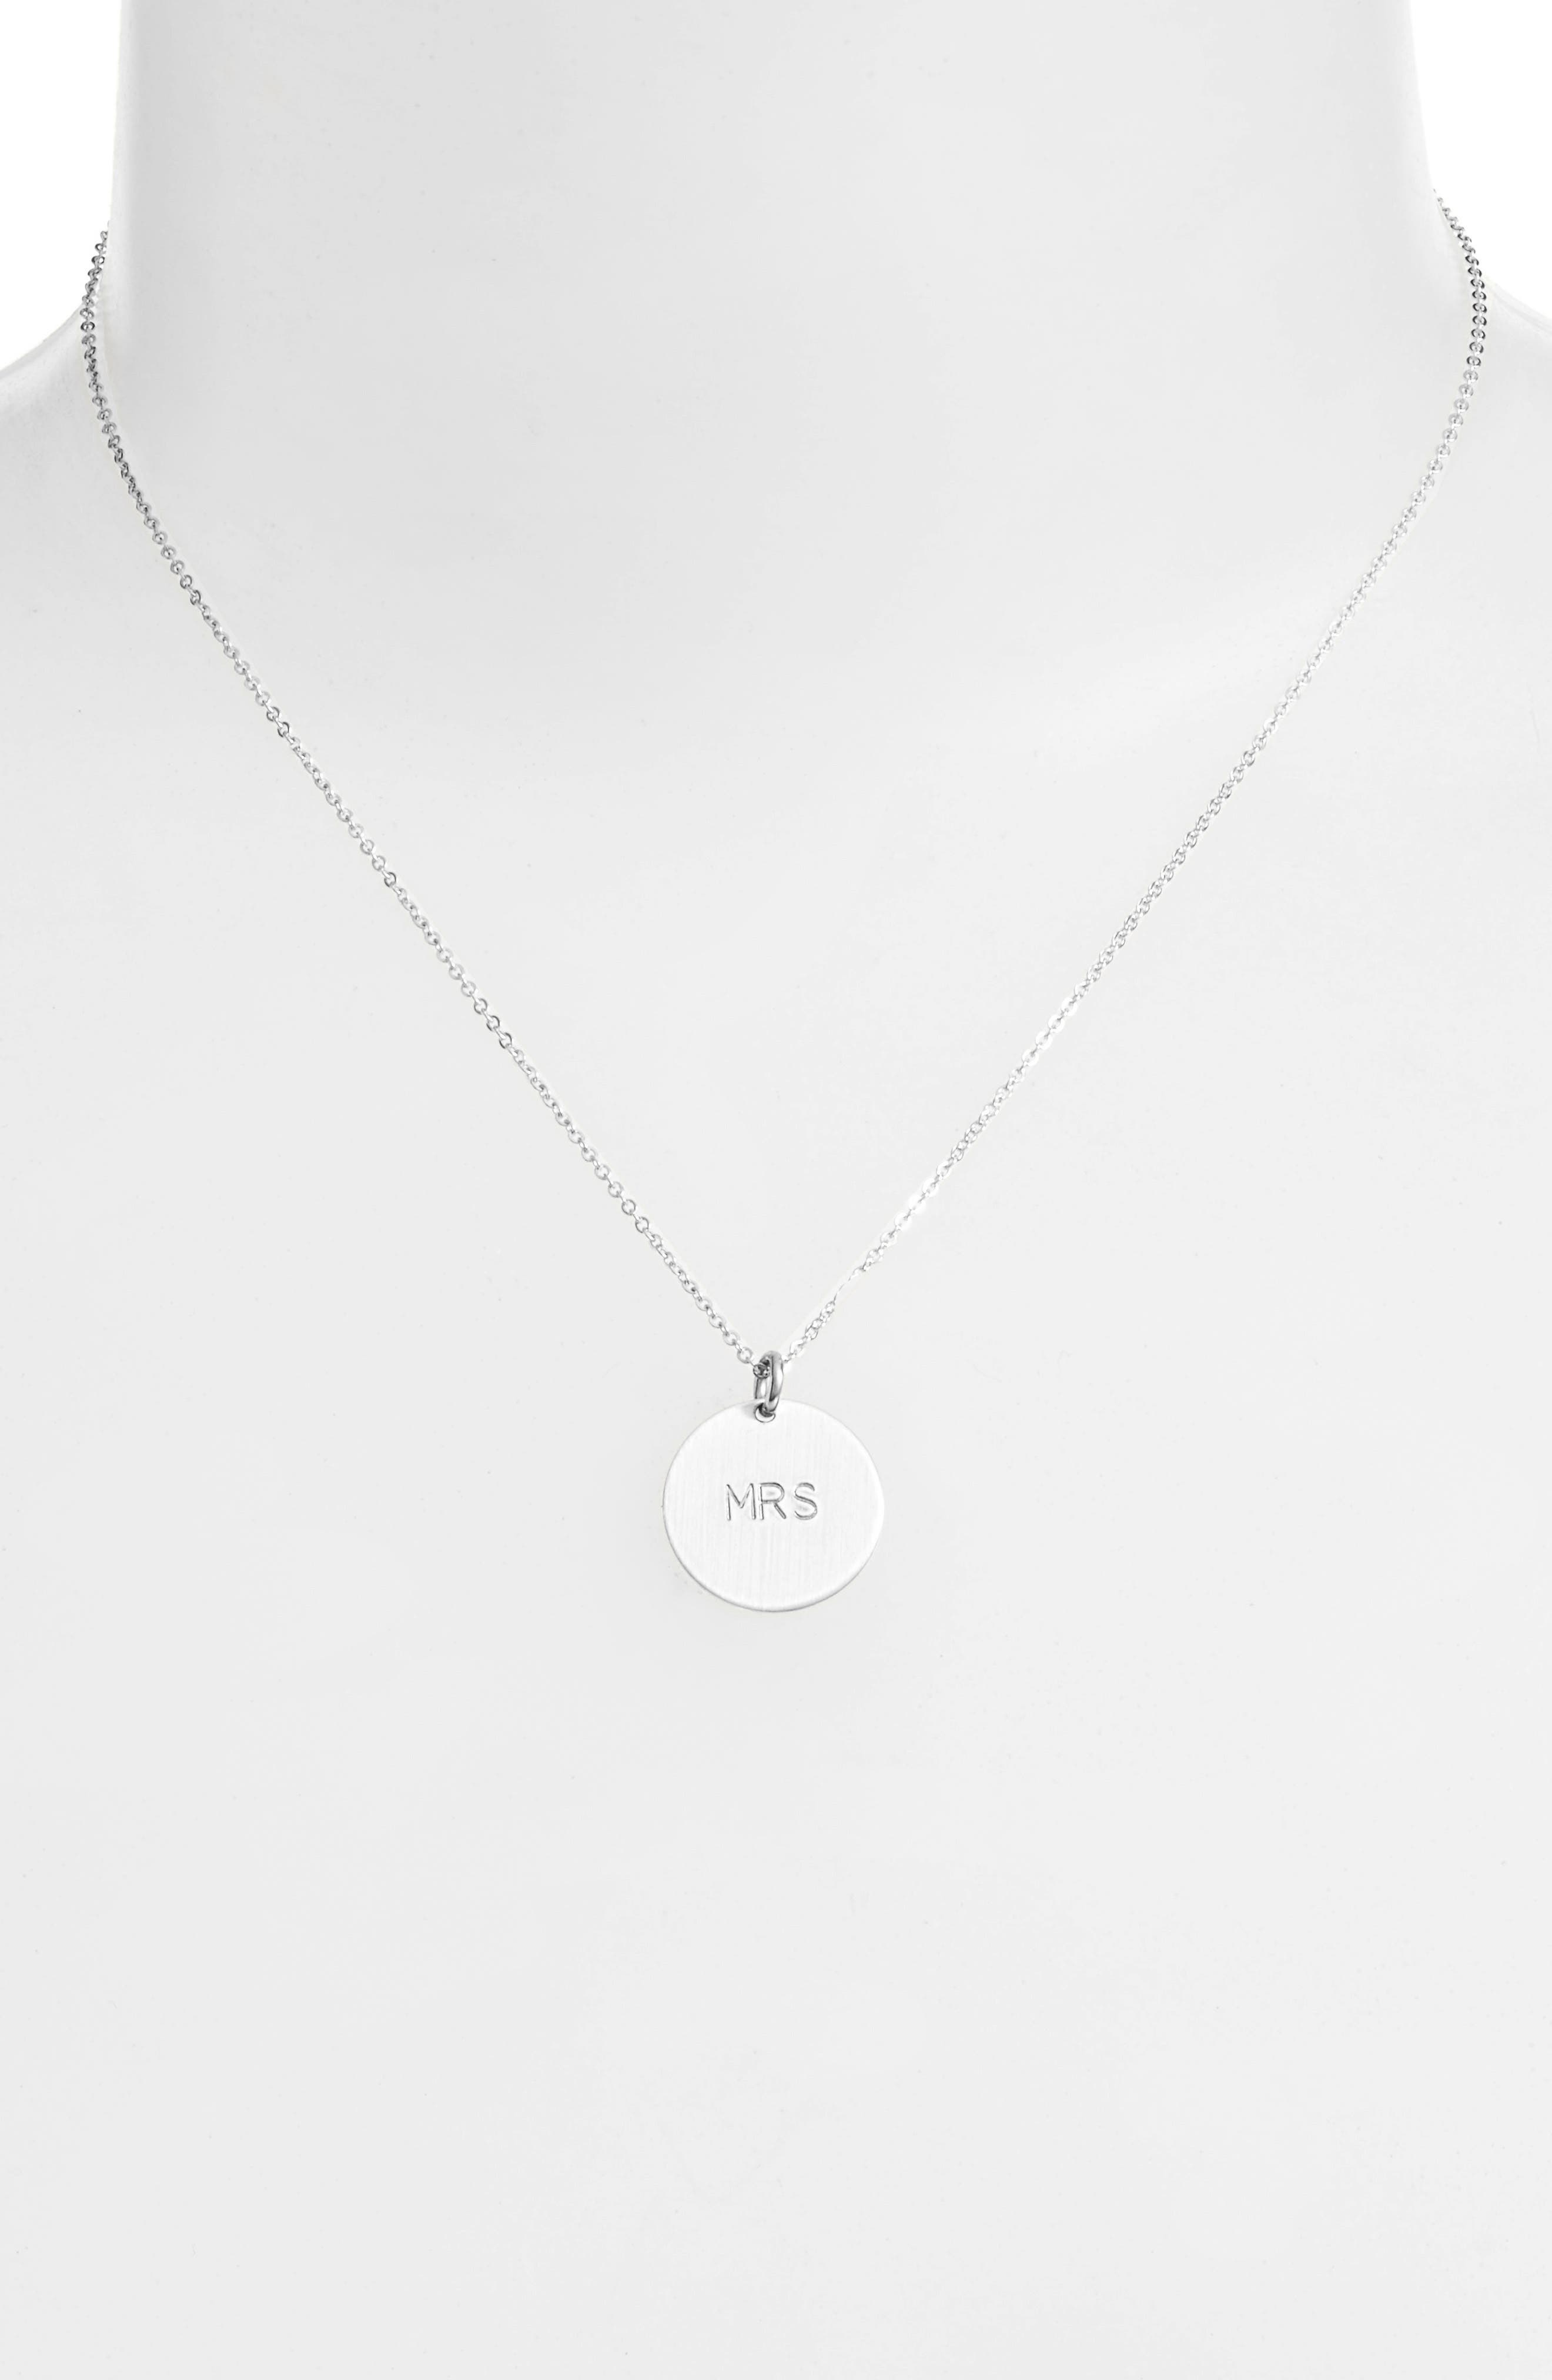 Newlywed Pendant Necklace,                             Alternate thumbnail 2, color,                             040